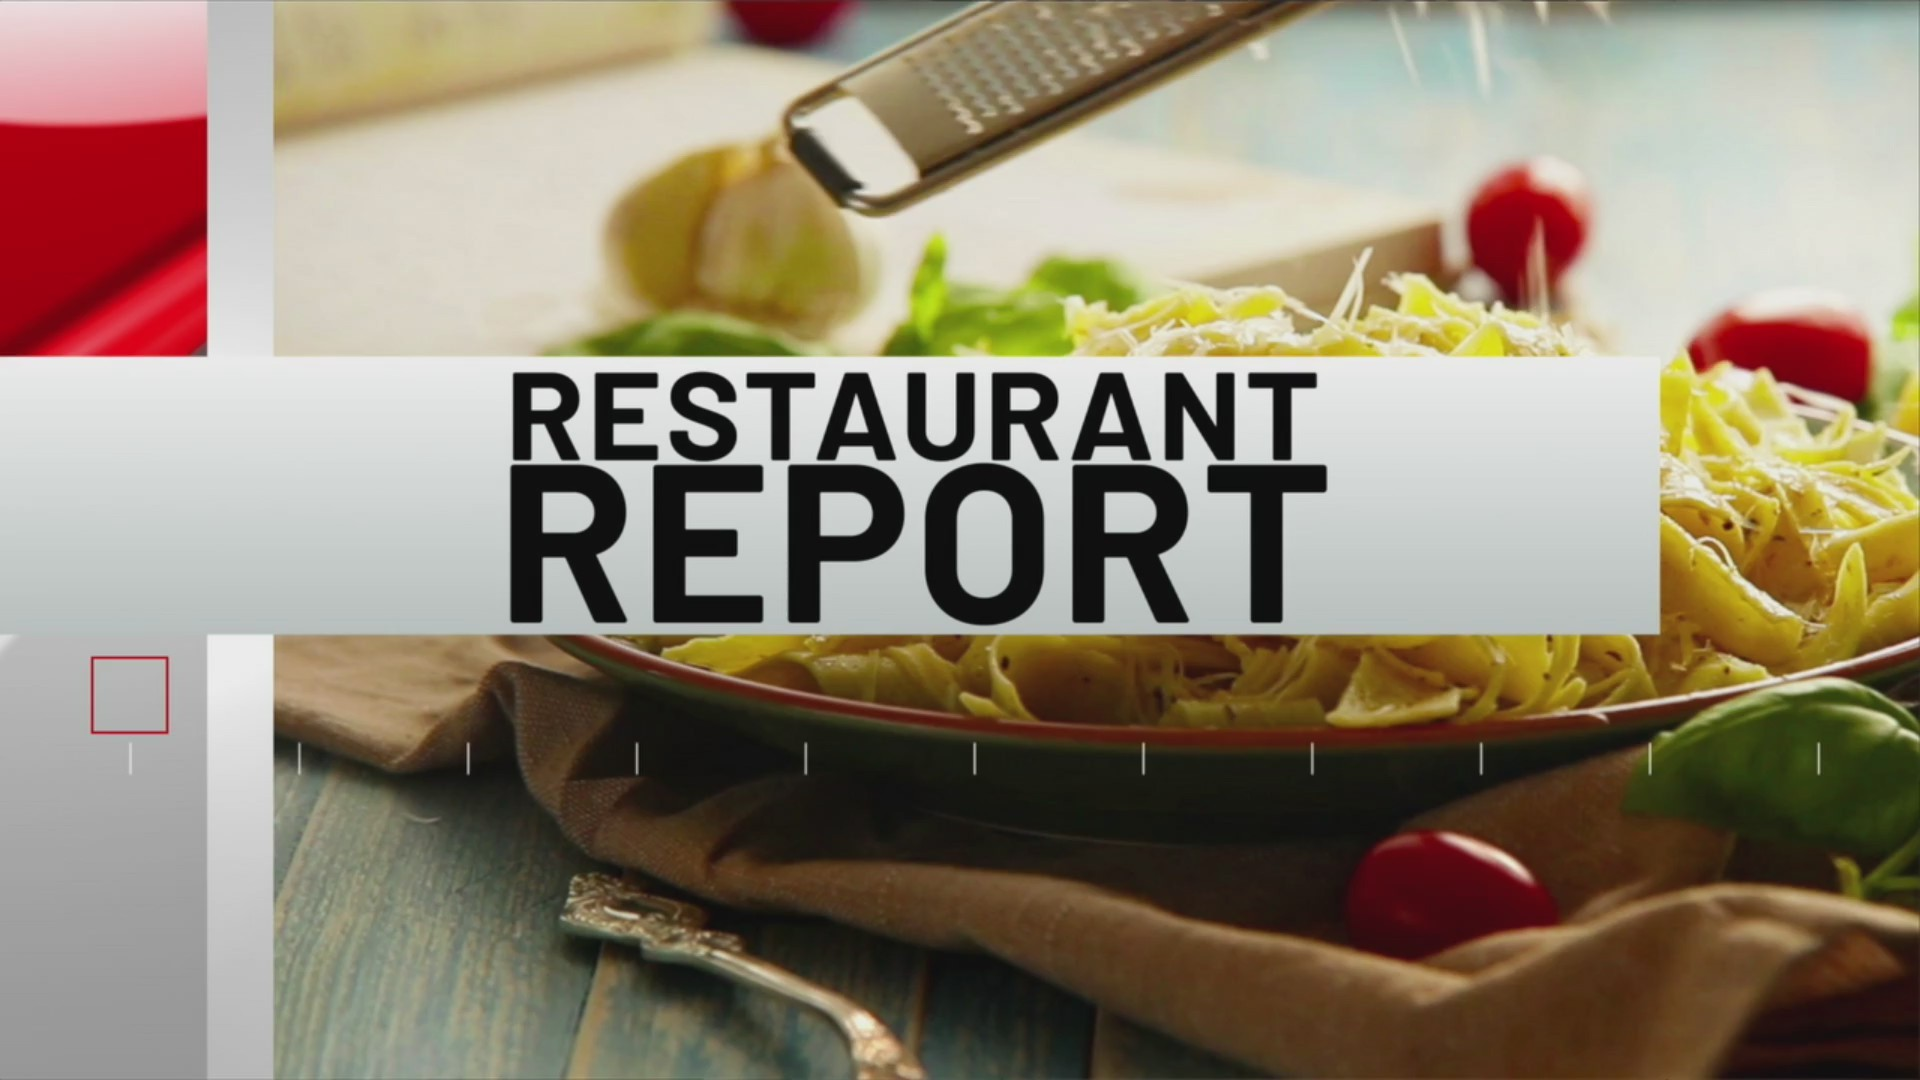 Restaurant Report: Black residue, old food